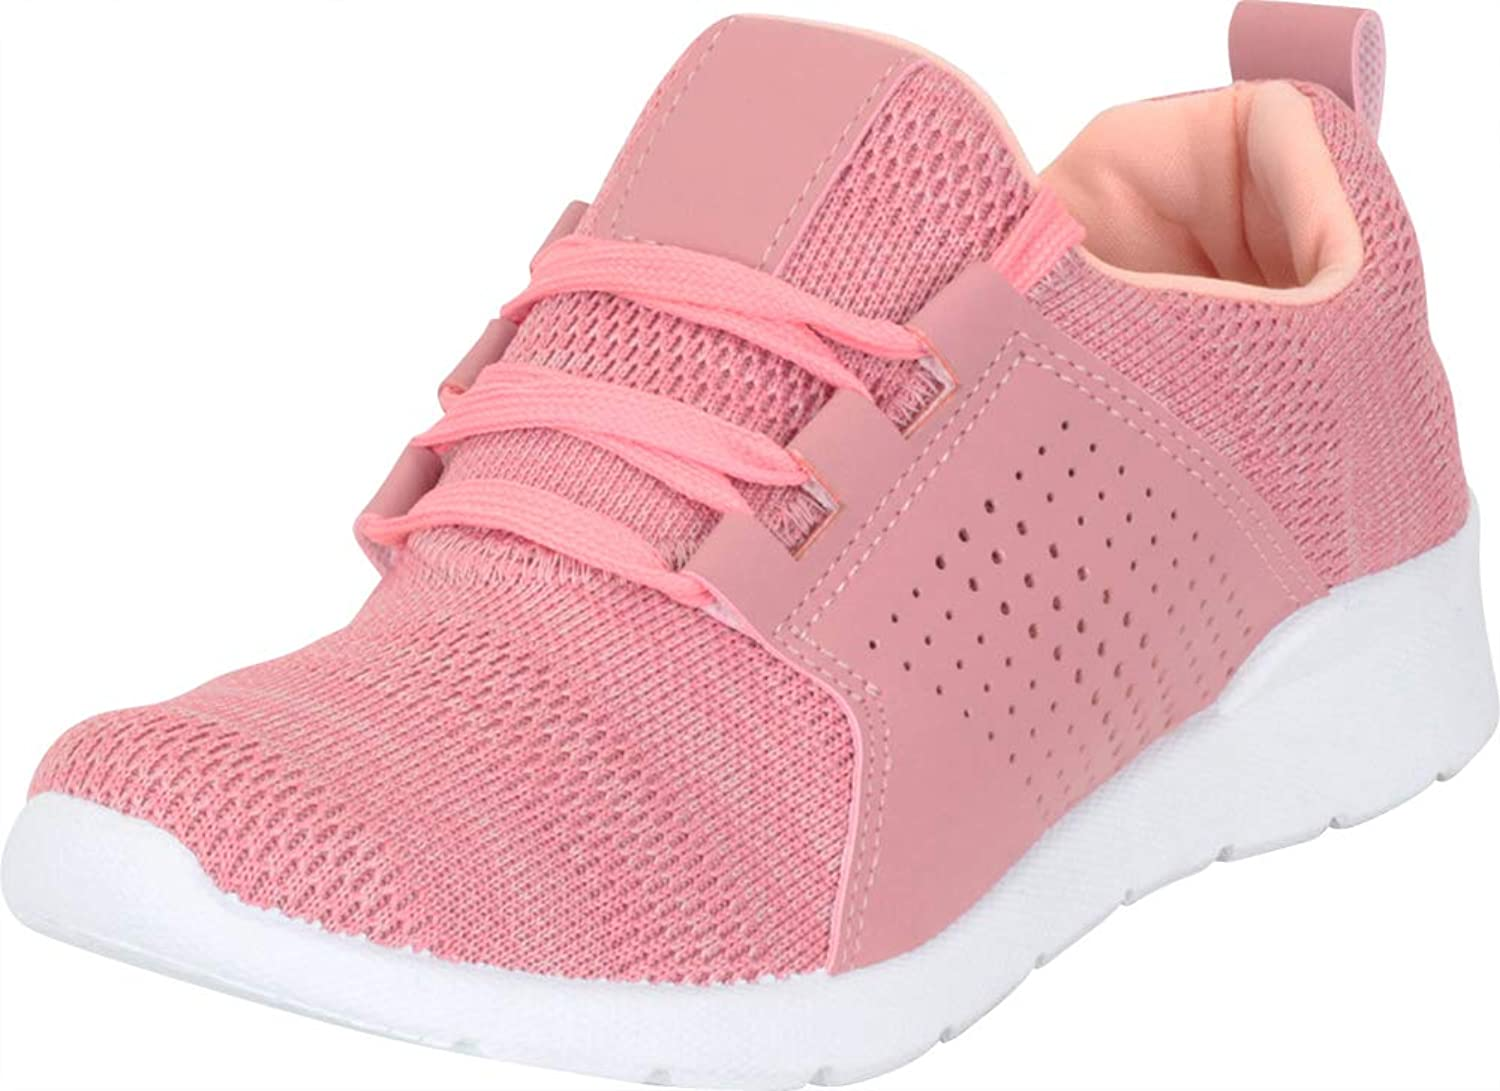 Cambridge Select Women's Low Top Lightweight Breathable Mesh Lace-Up Fashion Sneaker